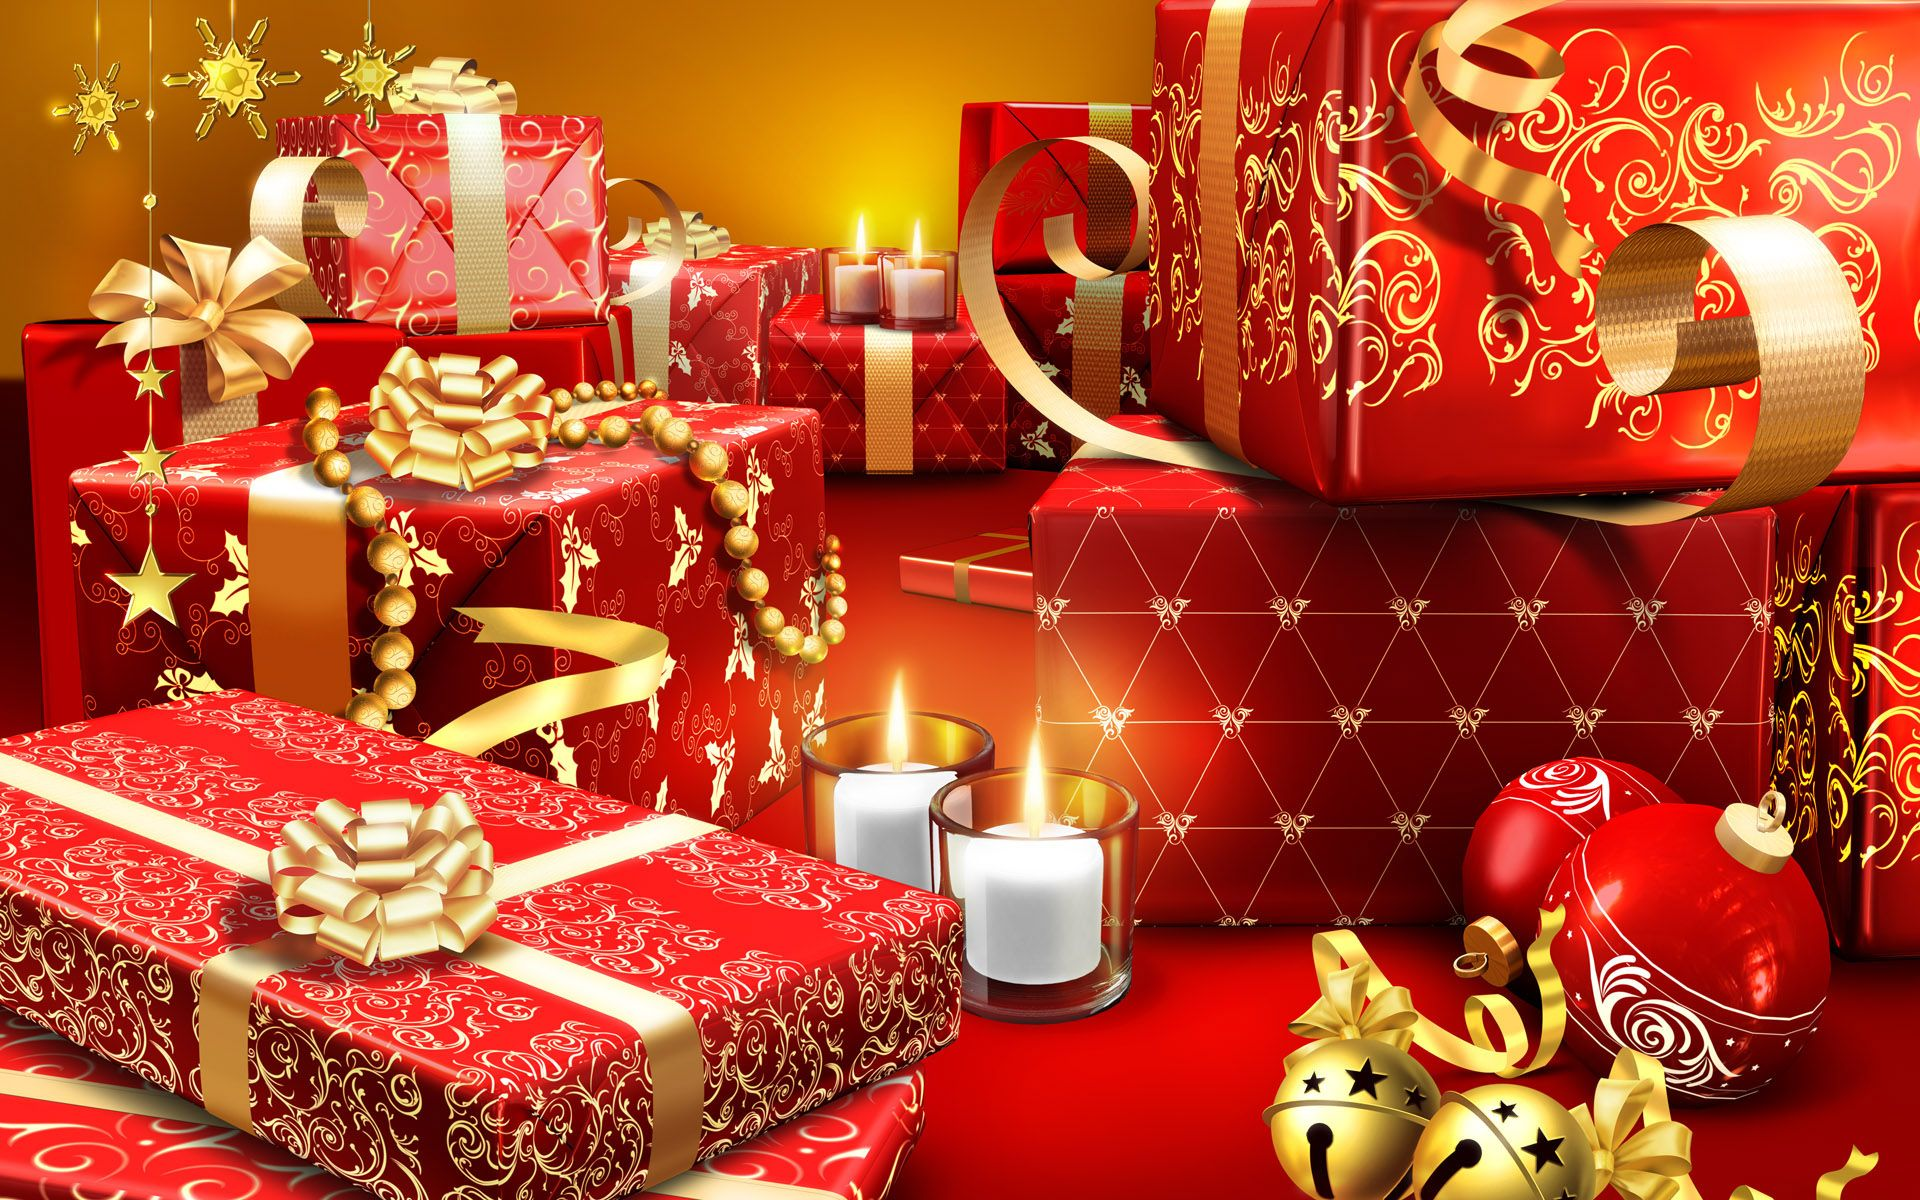 46 Best Free High Resolution Christmas Wallpapers Wallpaperaccess